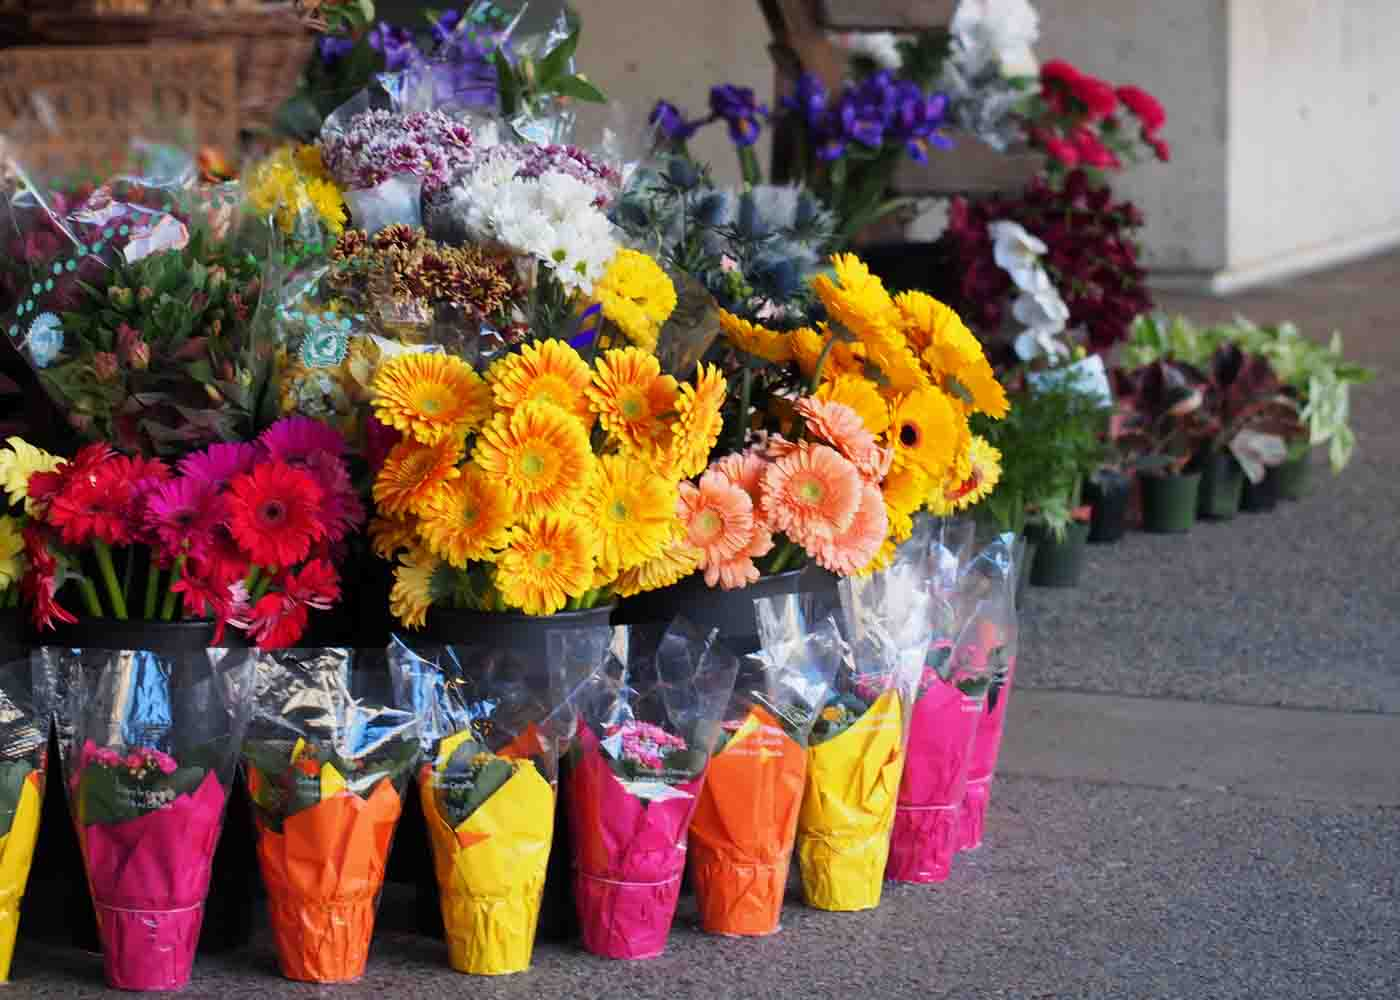 A sidewalk display of flowers in front of a florist's shop.